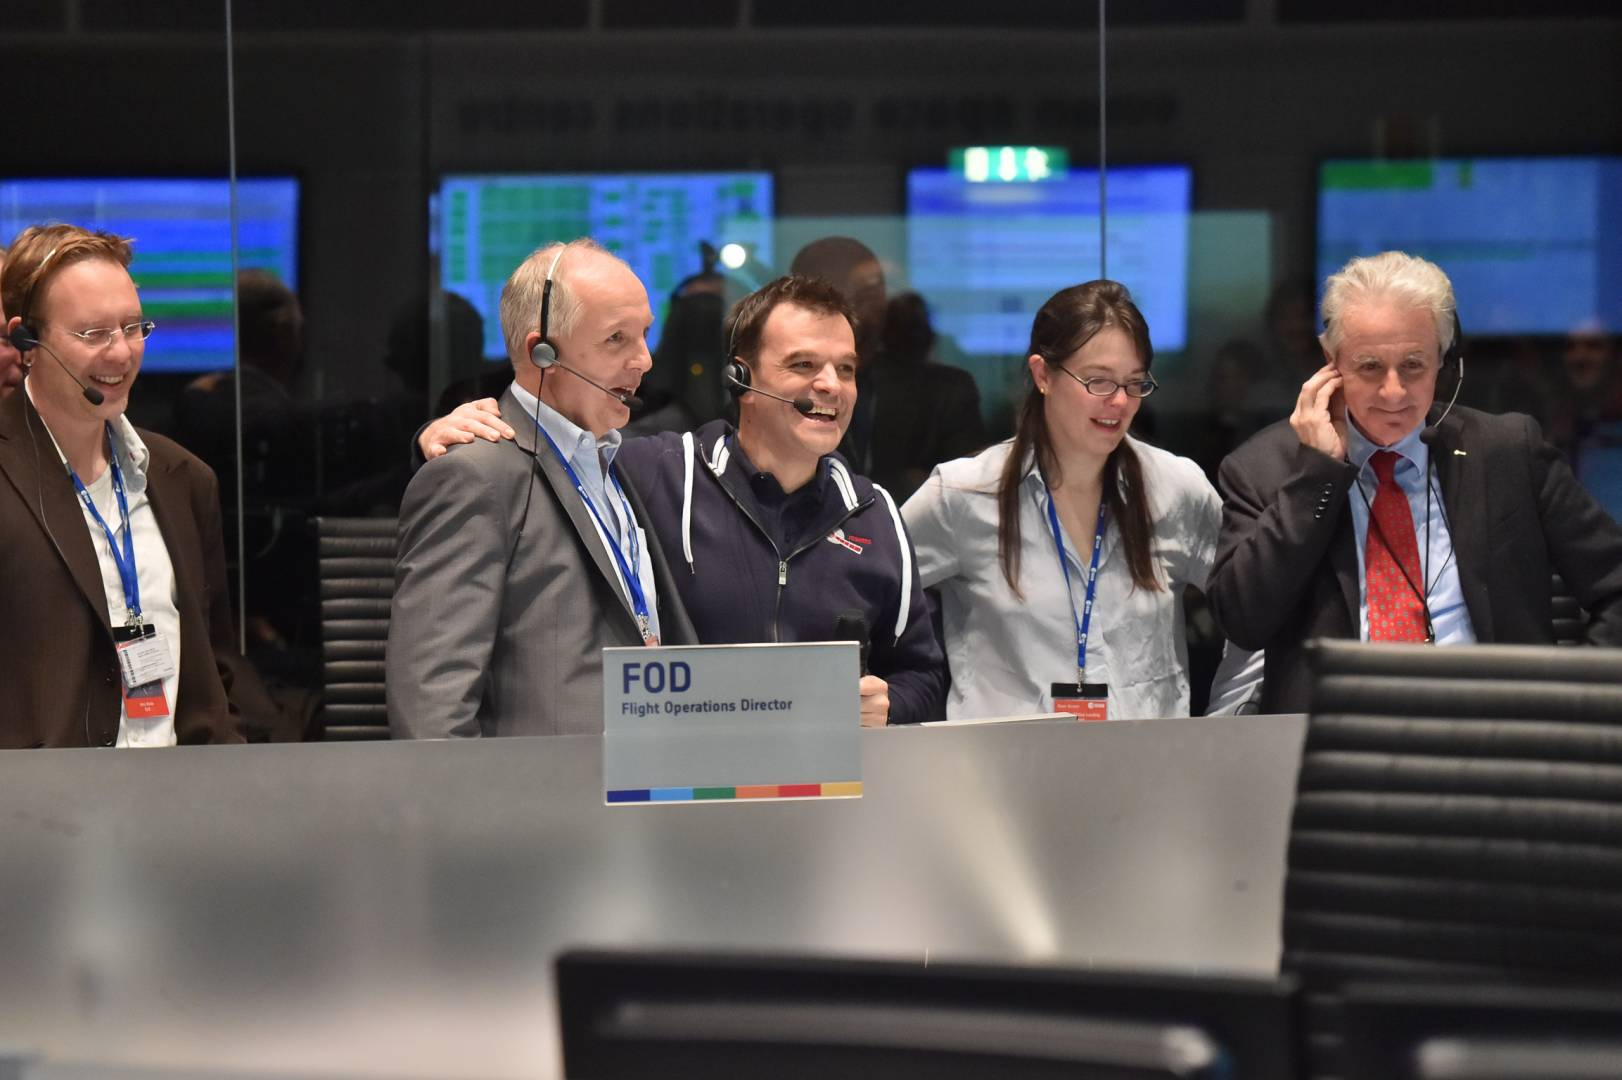 Cheers of excitement filled the Rosetta space mission's viewing platform.